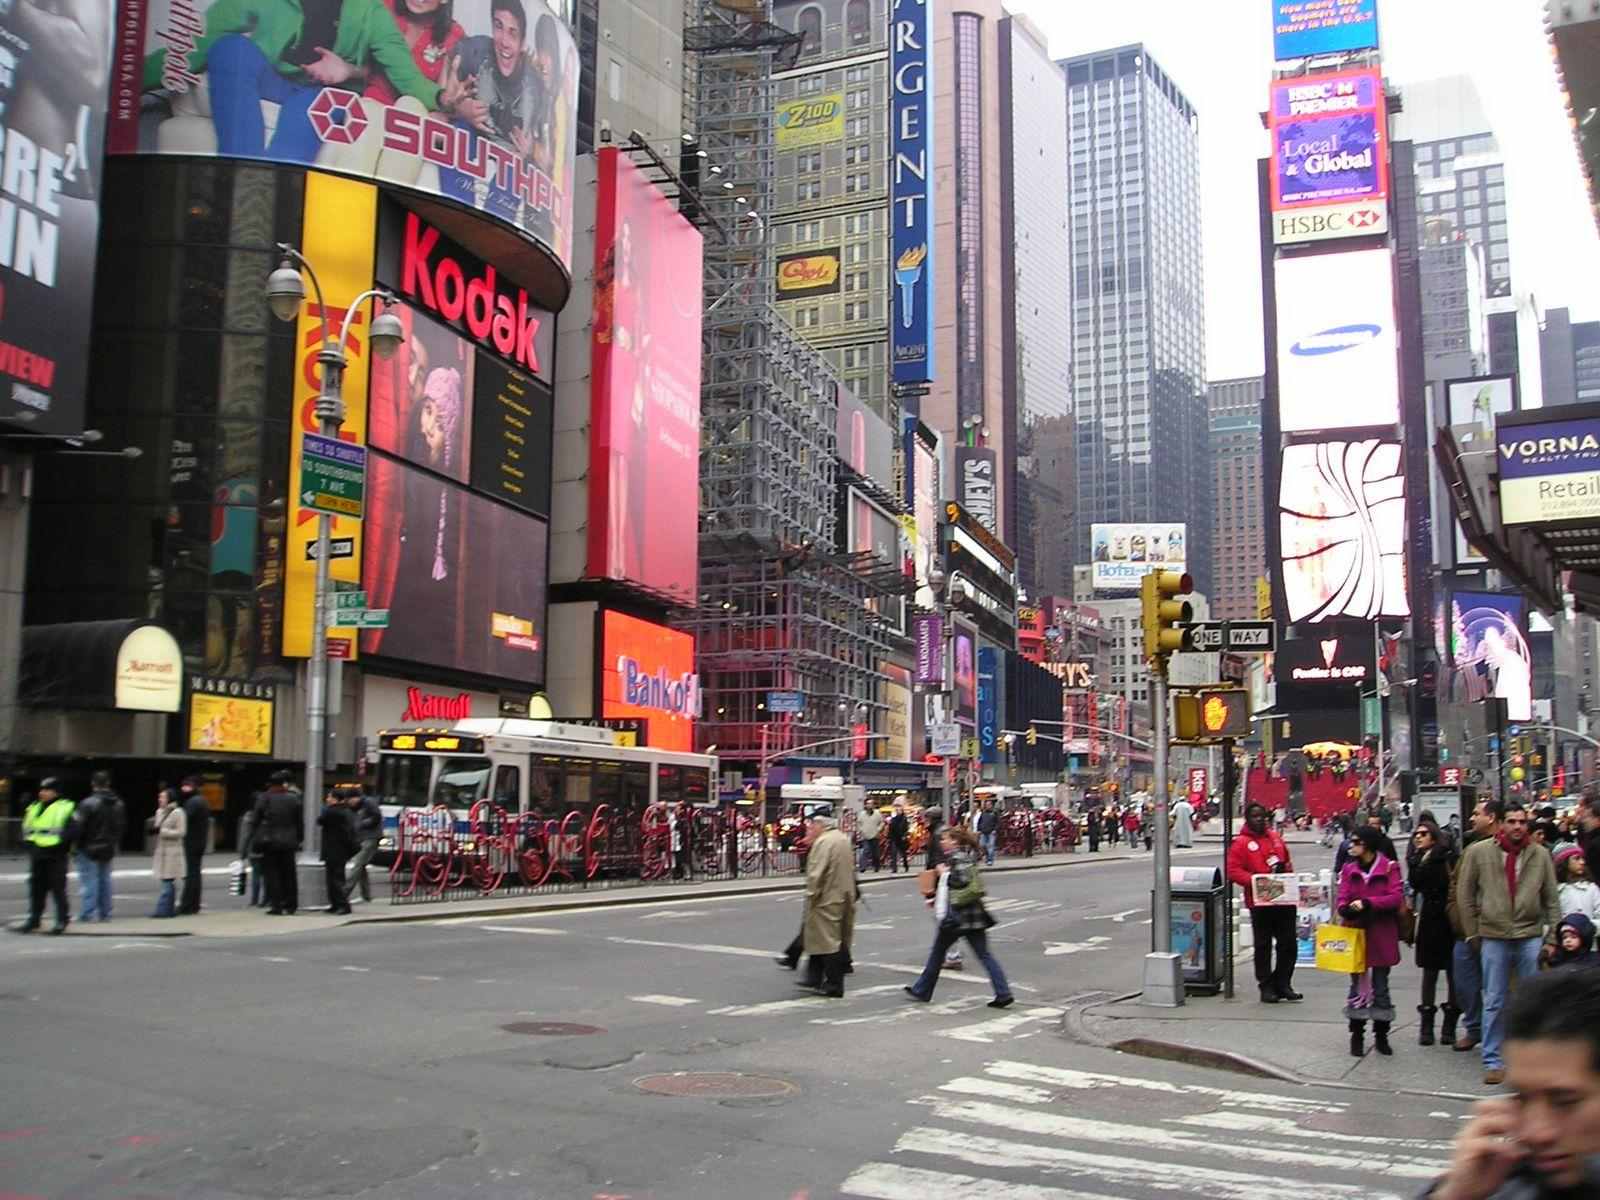 Times Square circa 2009 New York City. Billboards change company names but there always a